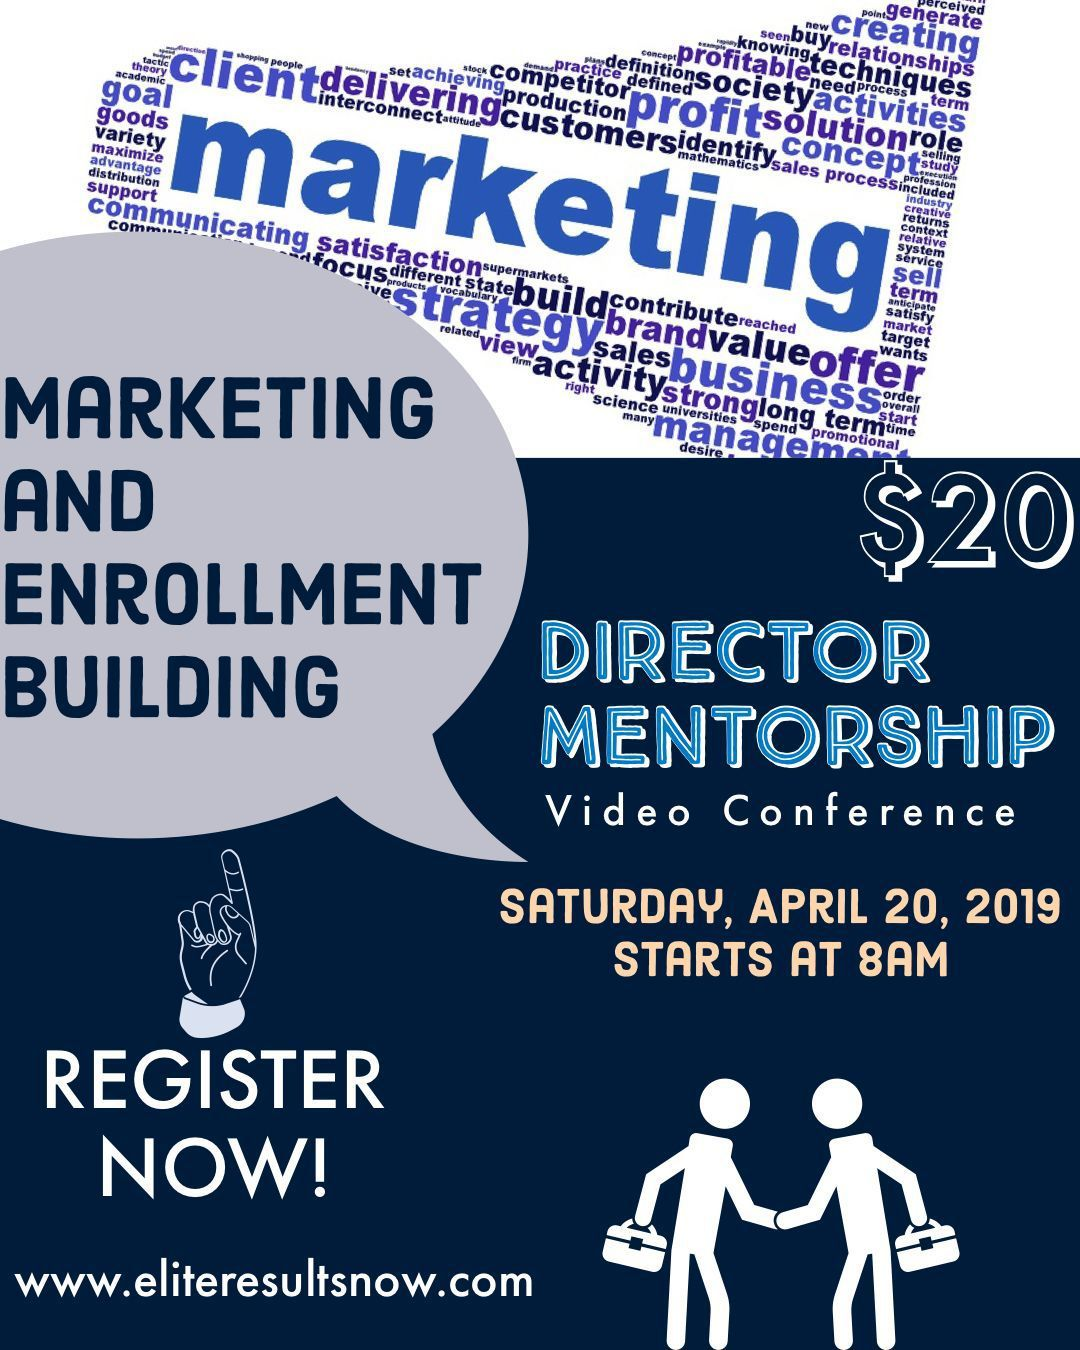 Marketing and Enrollment Building Webinar April 20, 2019